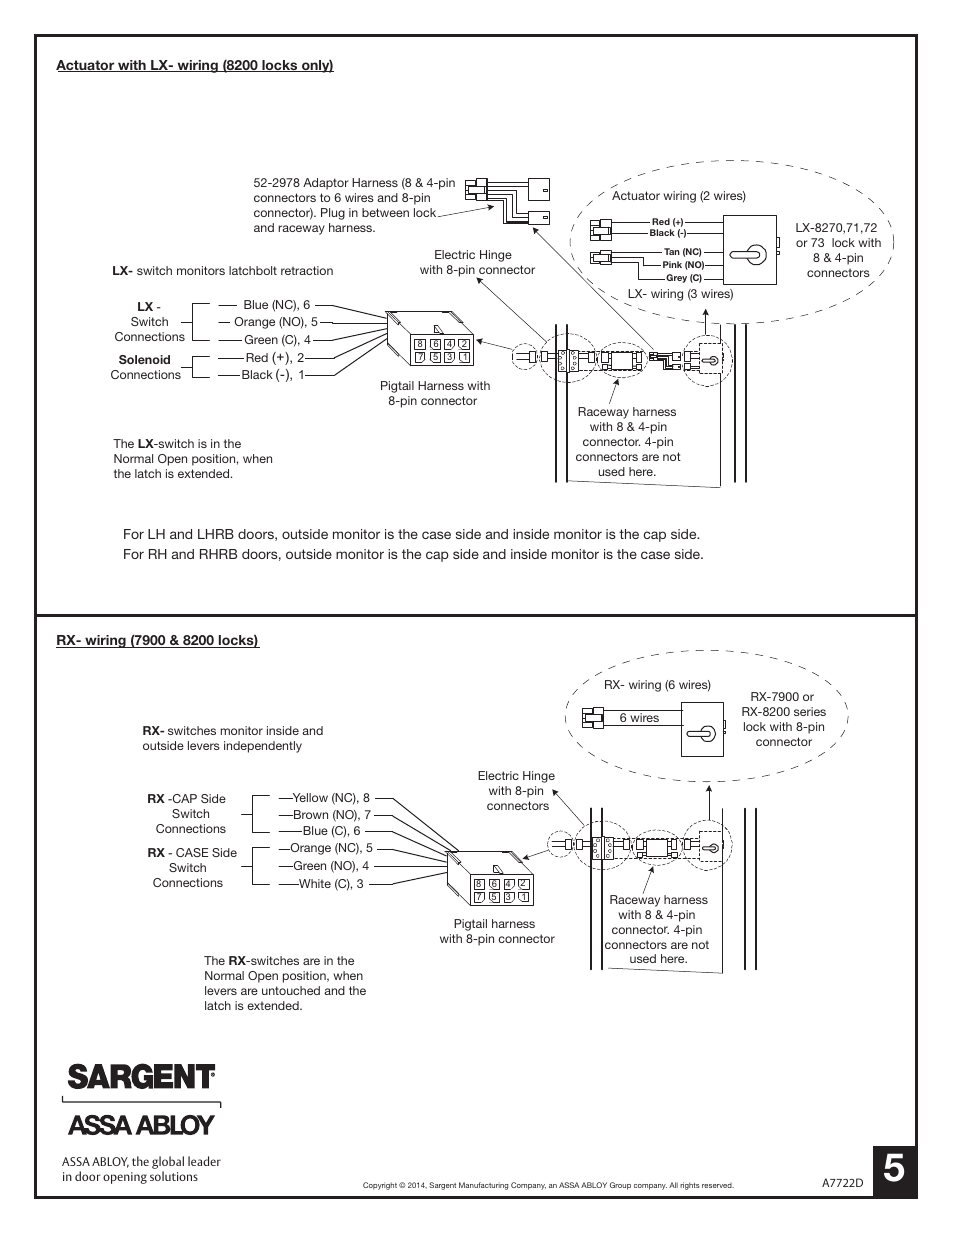 2 Wire Actuator Wiring Sargent 7800 Knob Locks User Manual Page 5 8 Also For 9200 High Security Locksets 7900 Mortise Lock R8200 With Simpli Roseless Trim